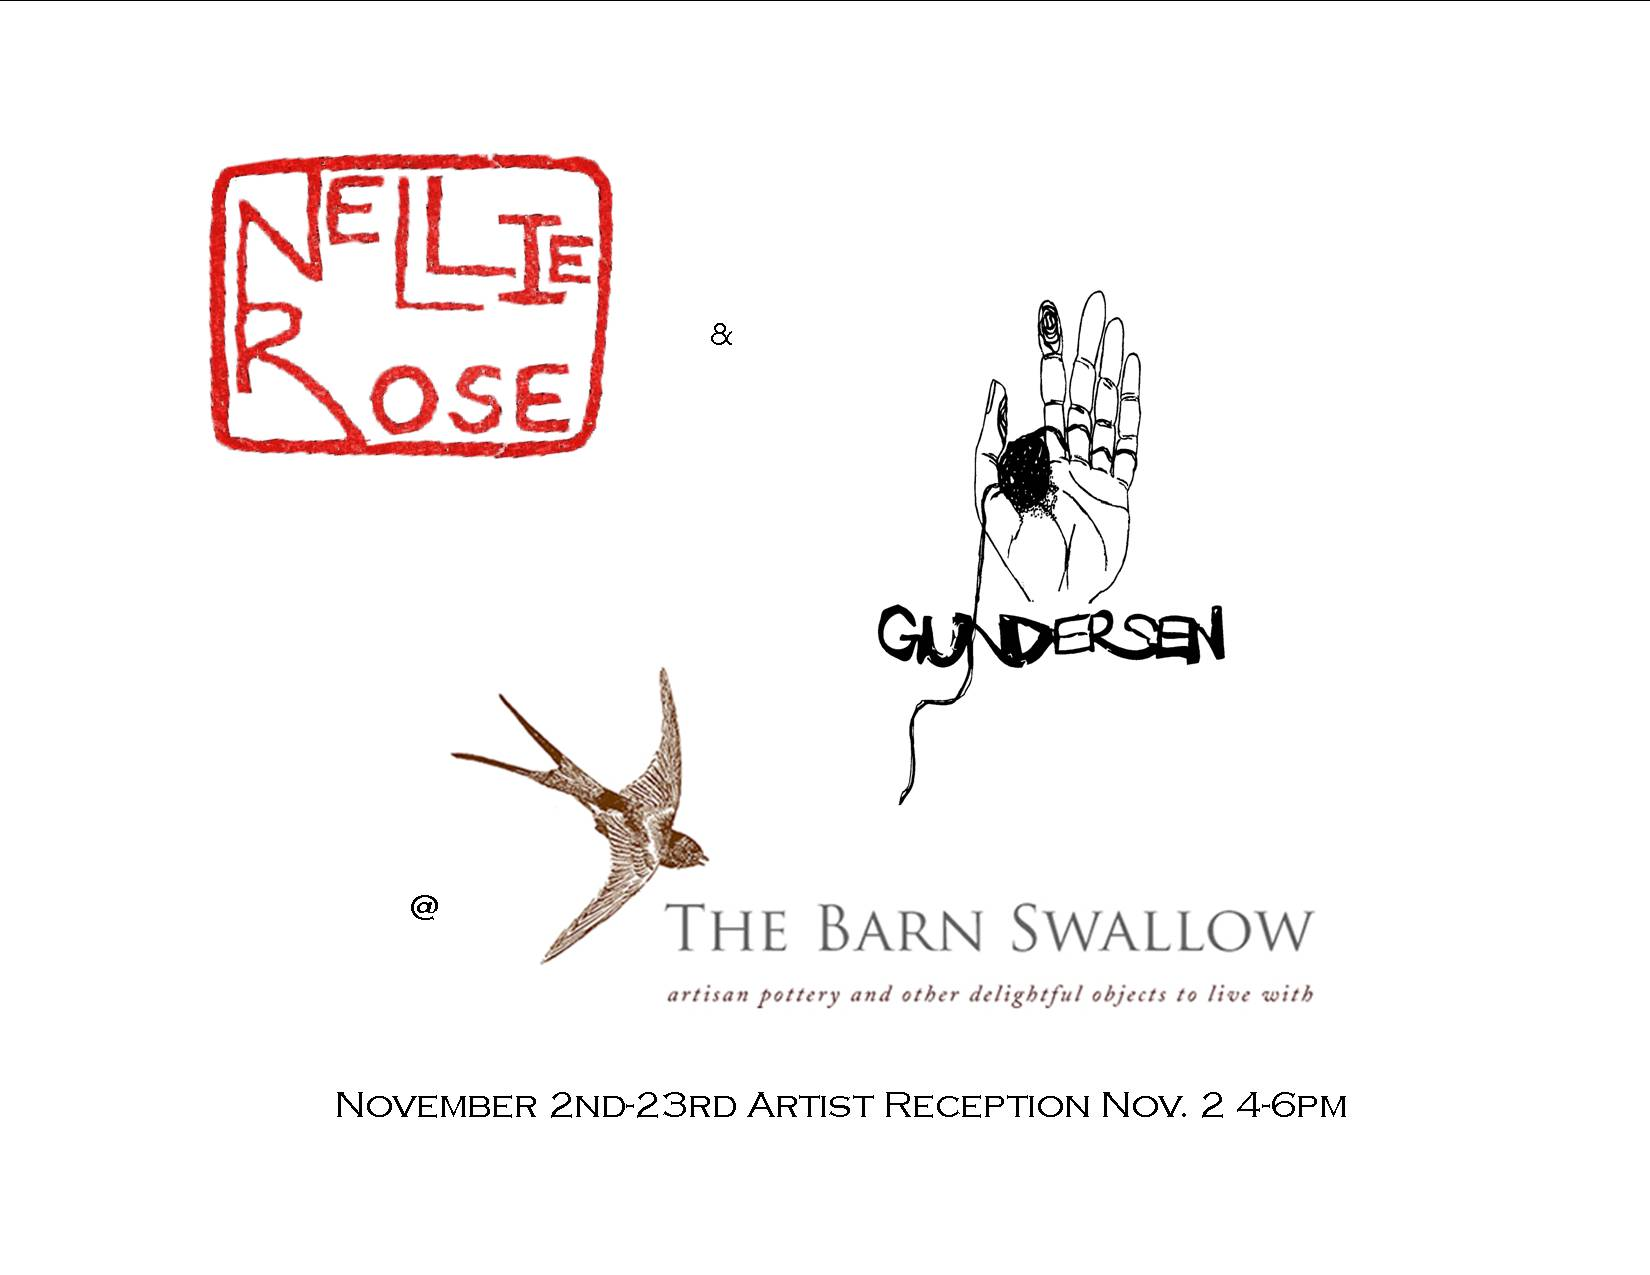 Join us at The Barn Swallow tonight from 4-6!